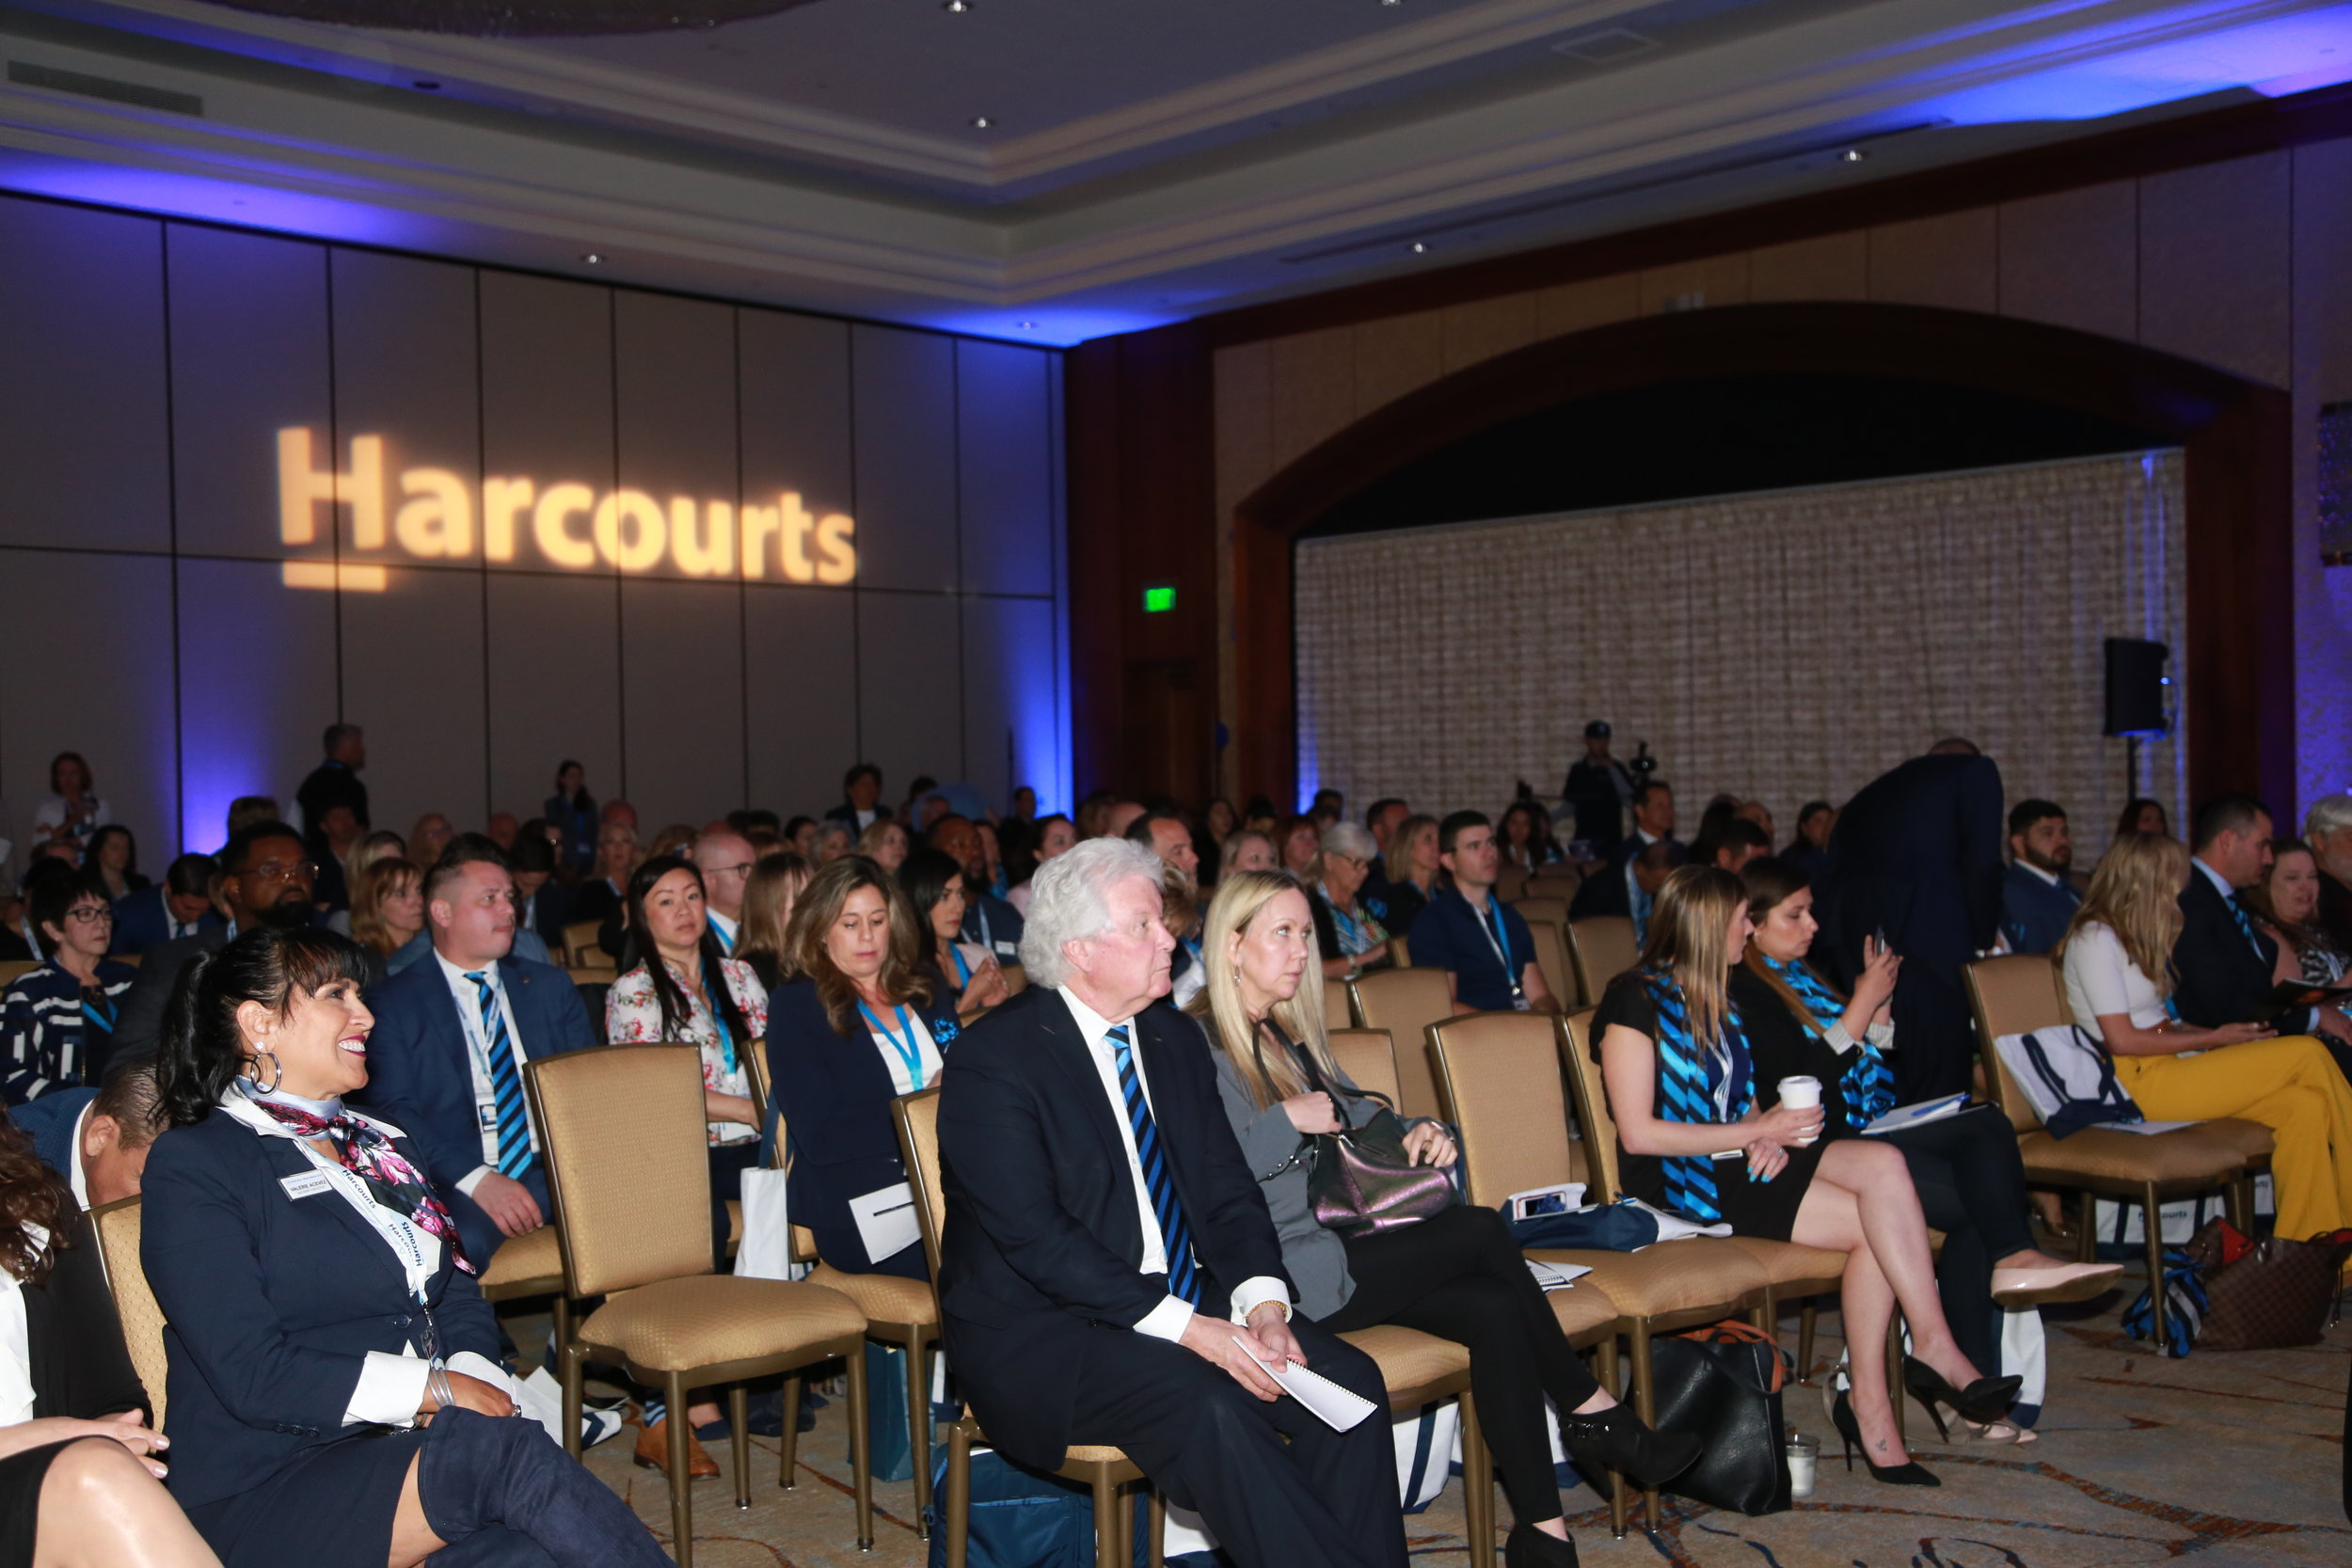 2019-03-26 Harcourts Conference - Day 2 1342.JPG